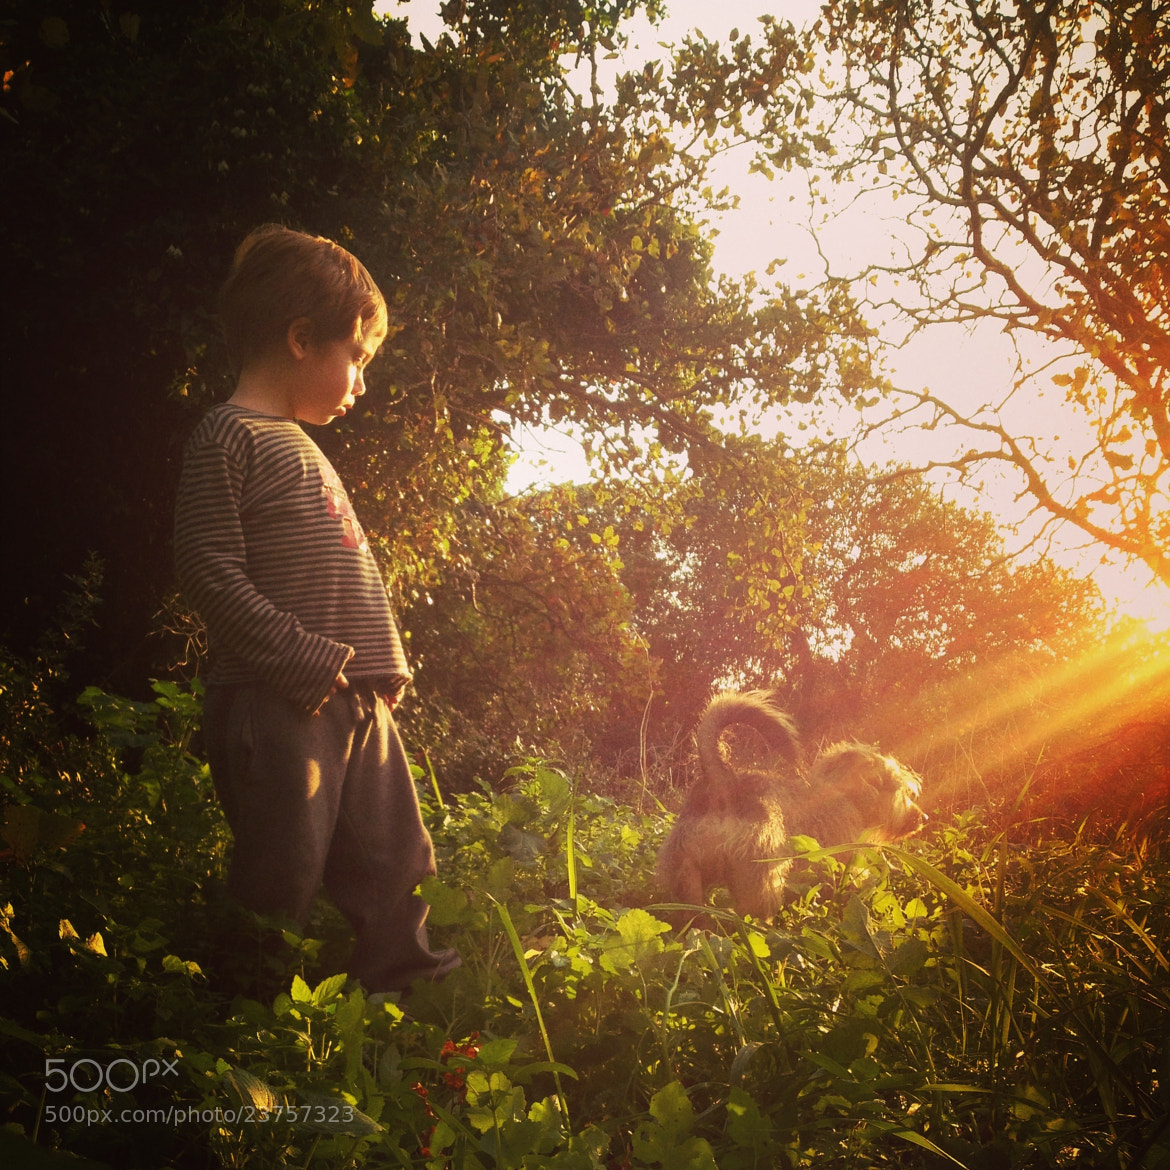 Photograph love story by yaara duvdevan on 500px